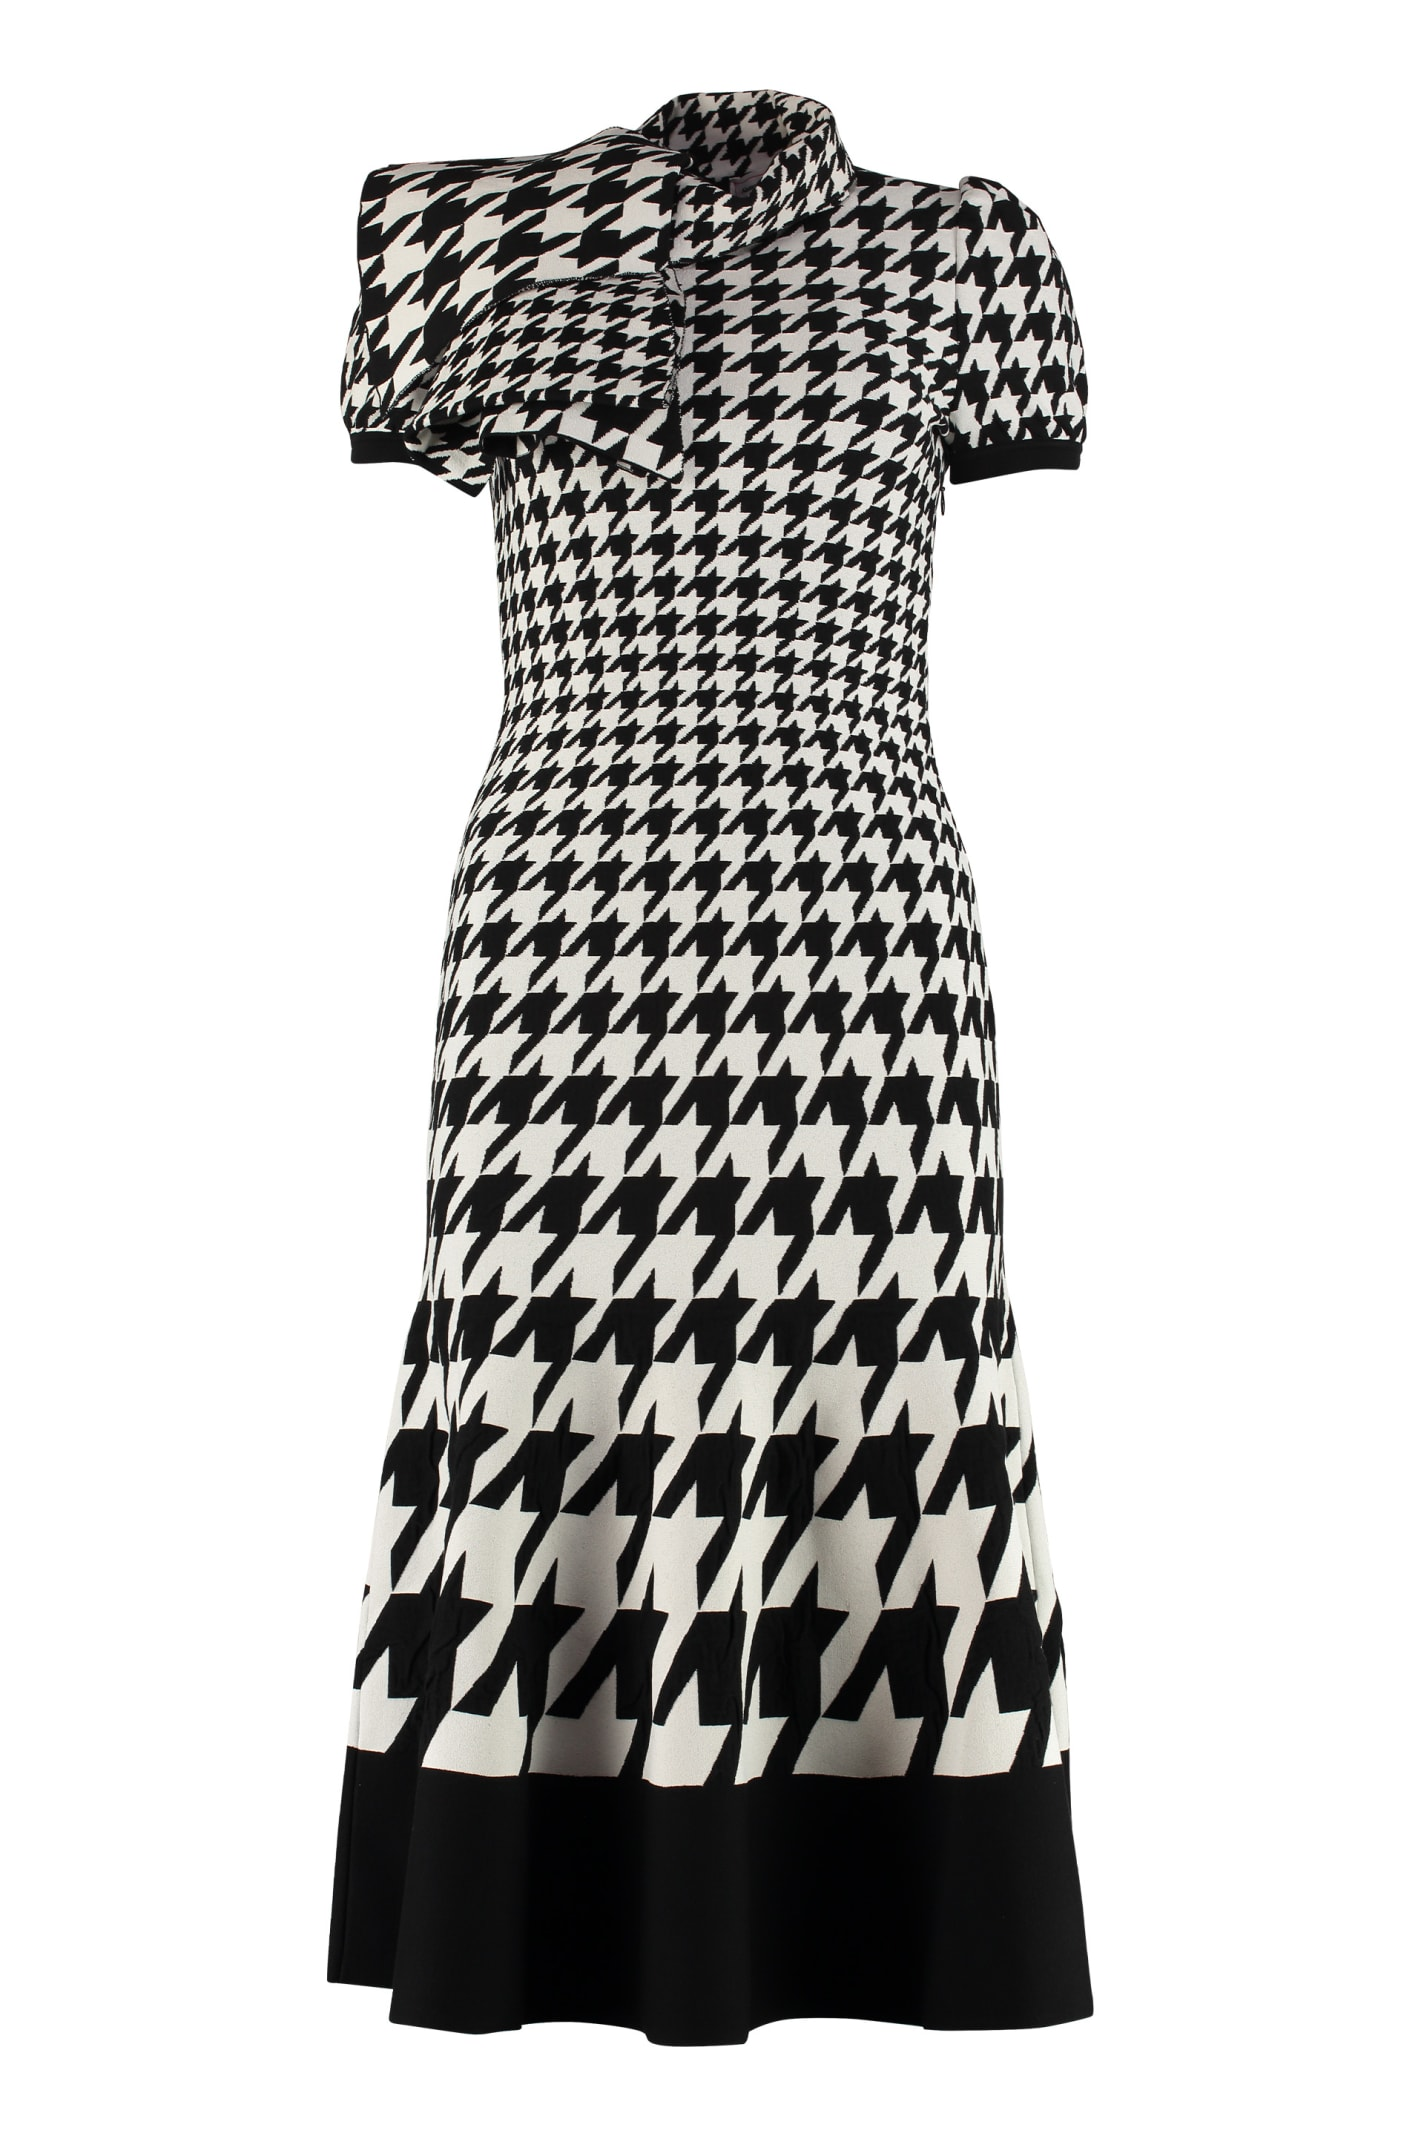 Alexander McQueen Jacquard Knit Midi-dress